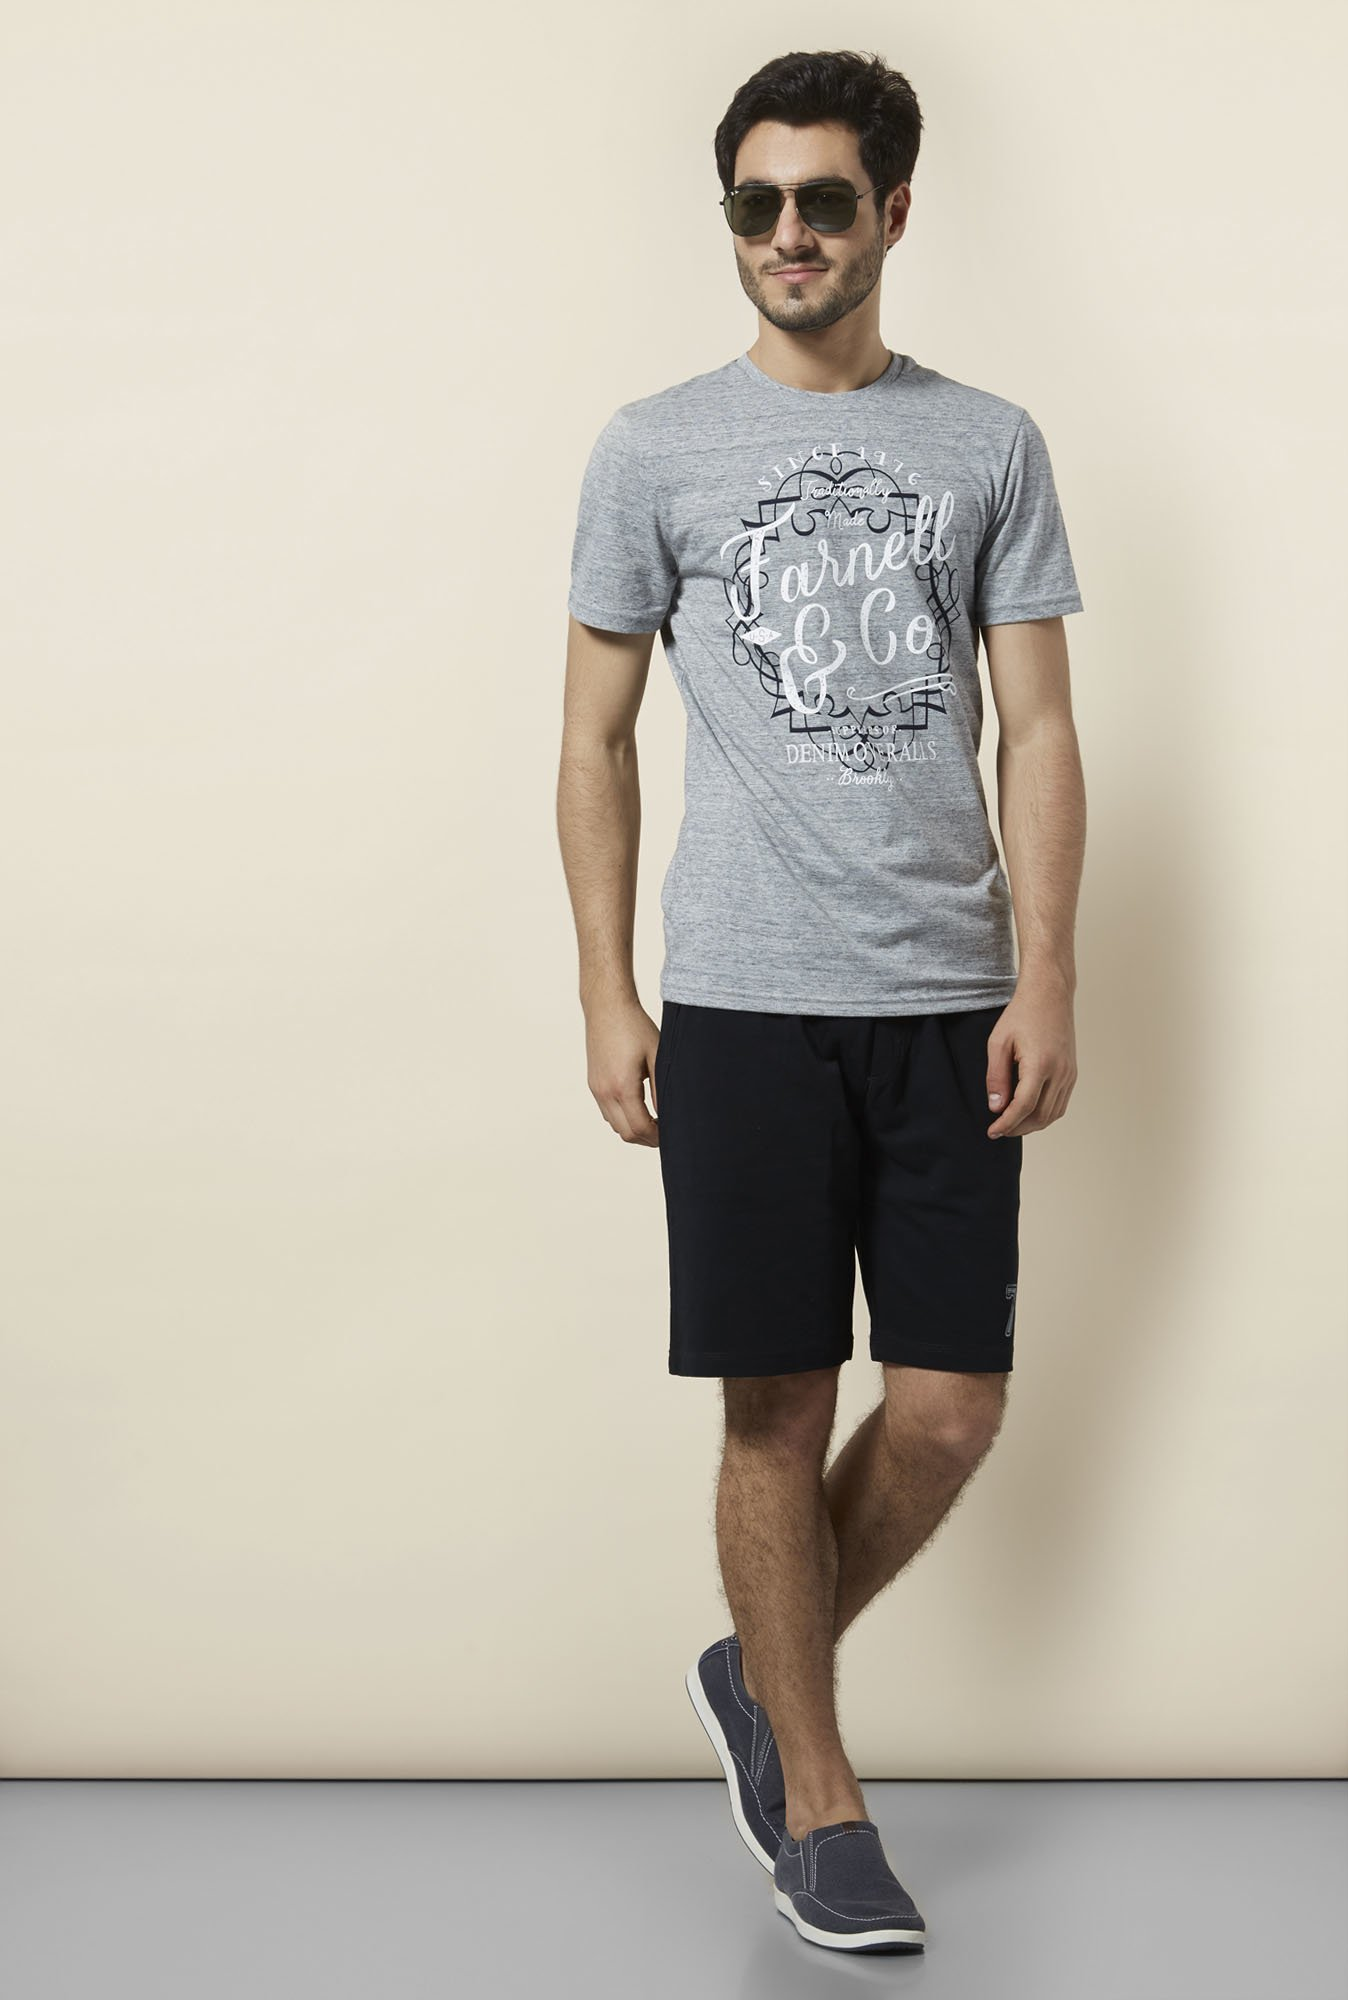 celio* Grey Printed T-Shirt